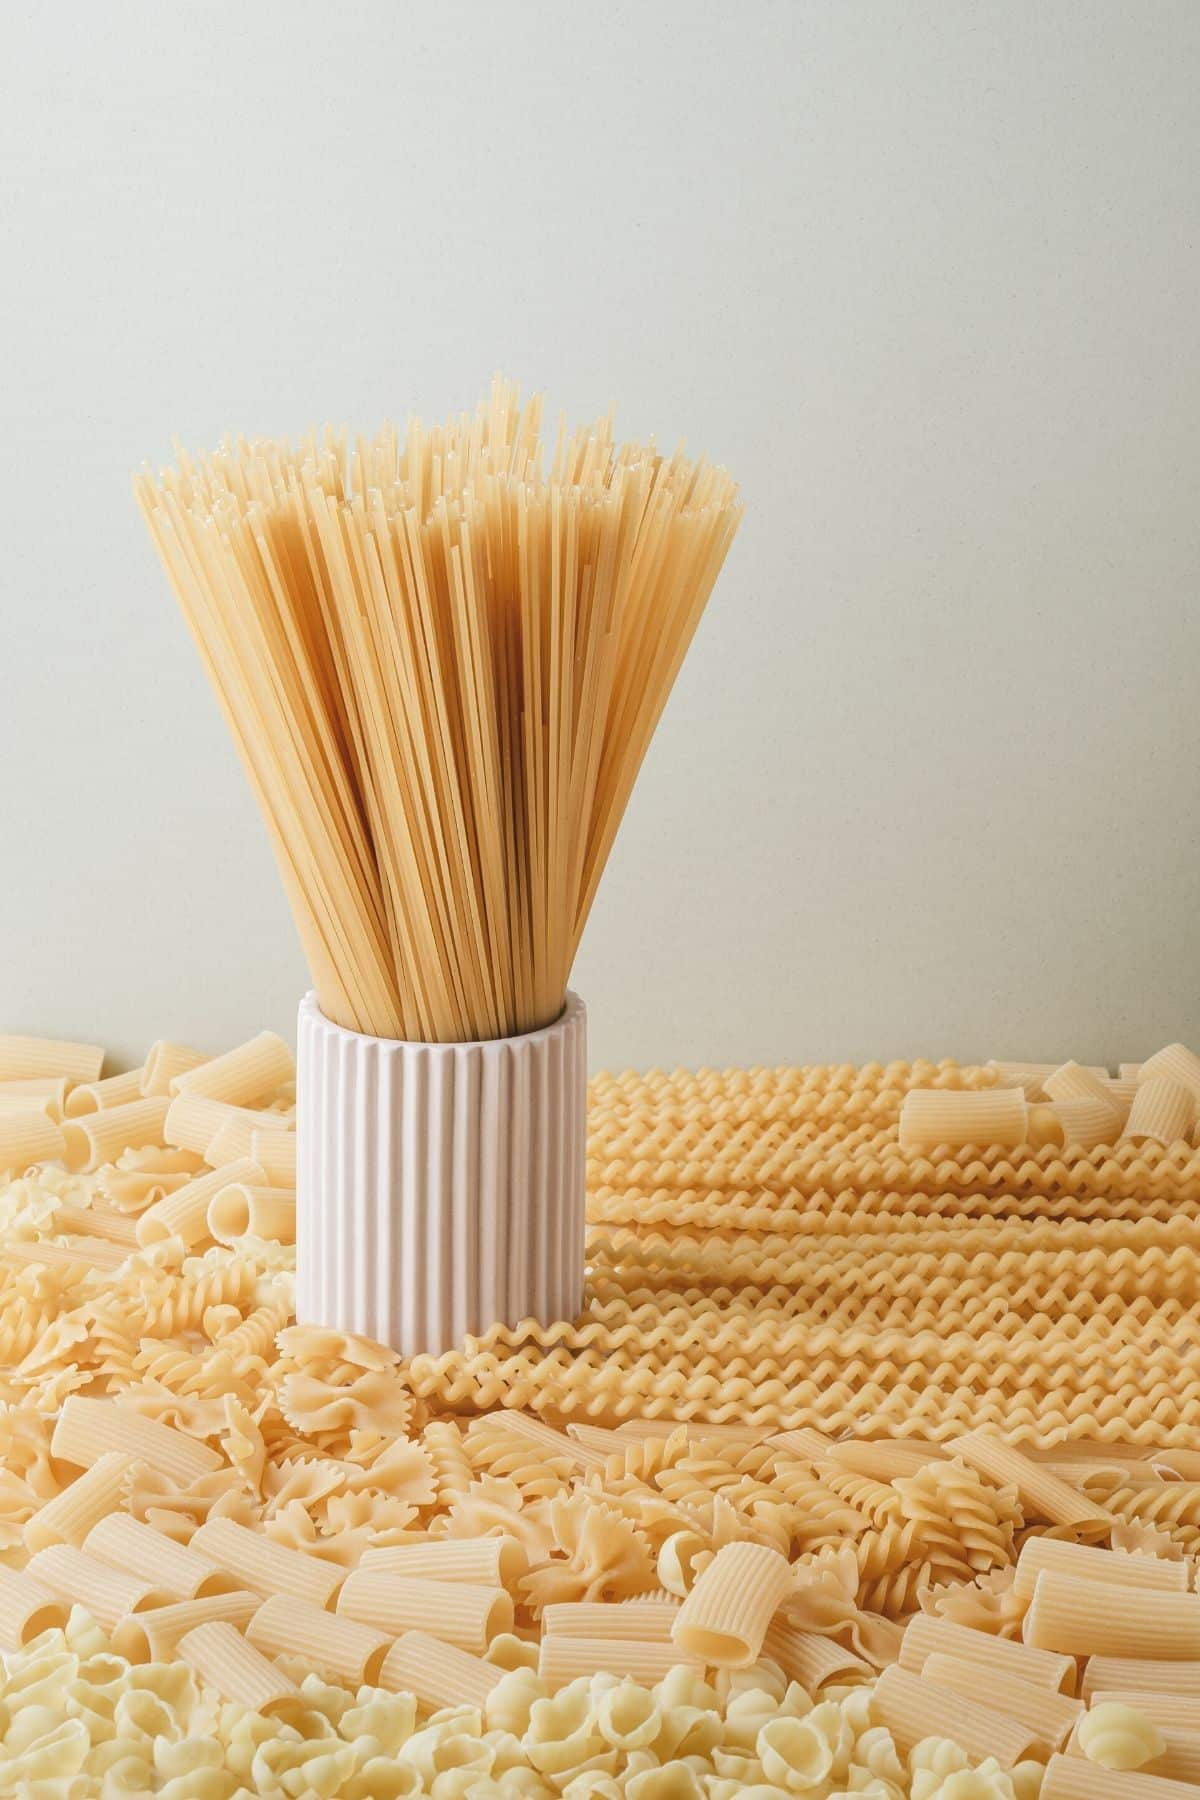 dry pastas of varying types on a table